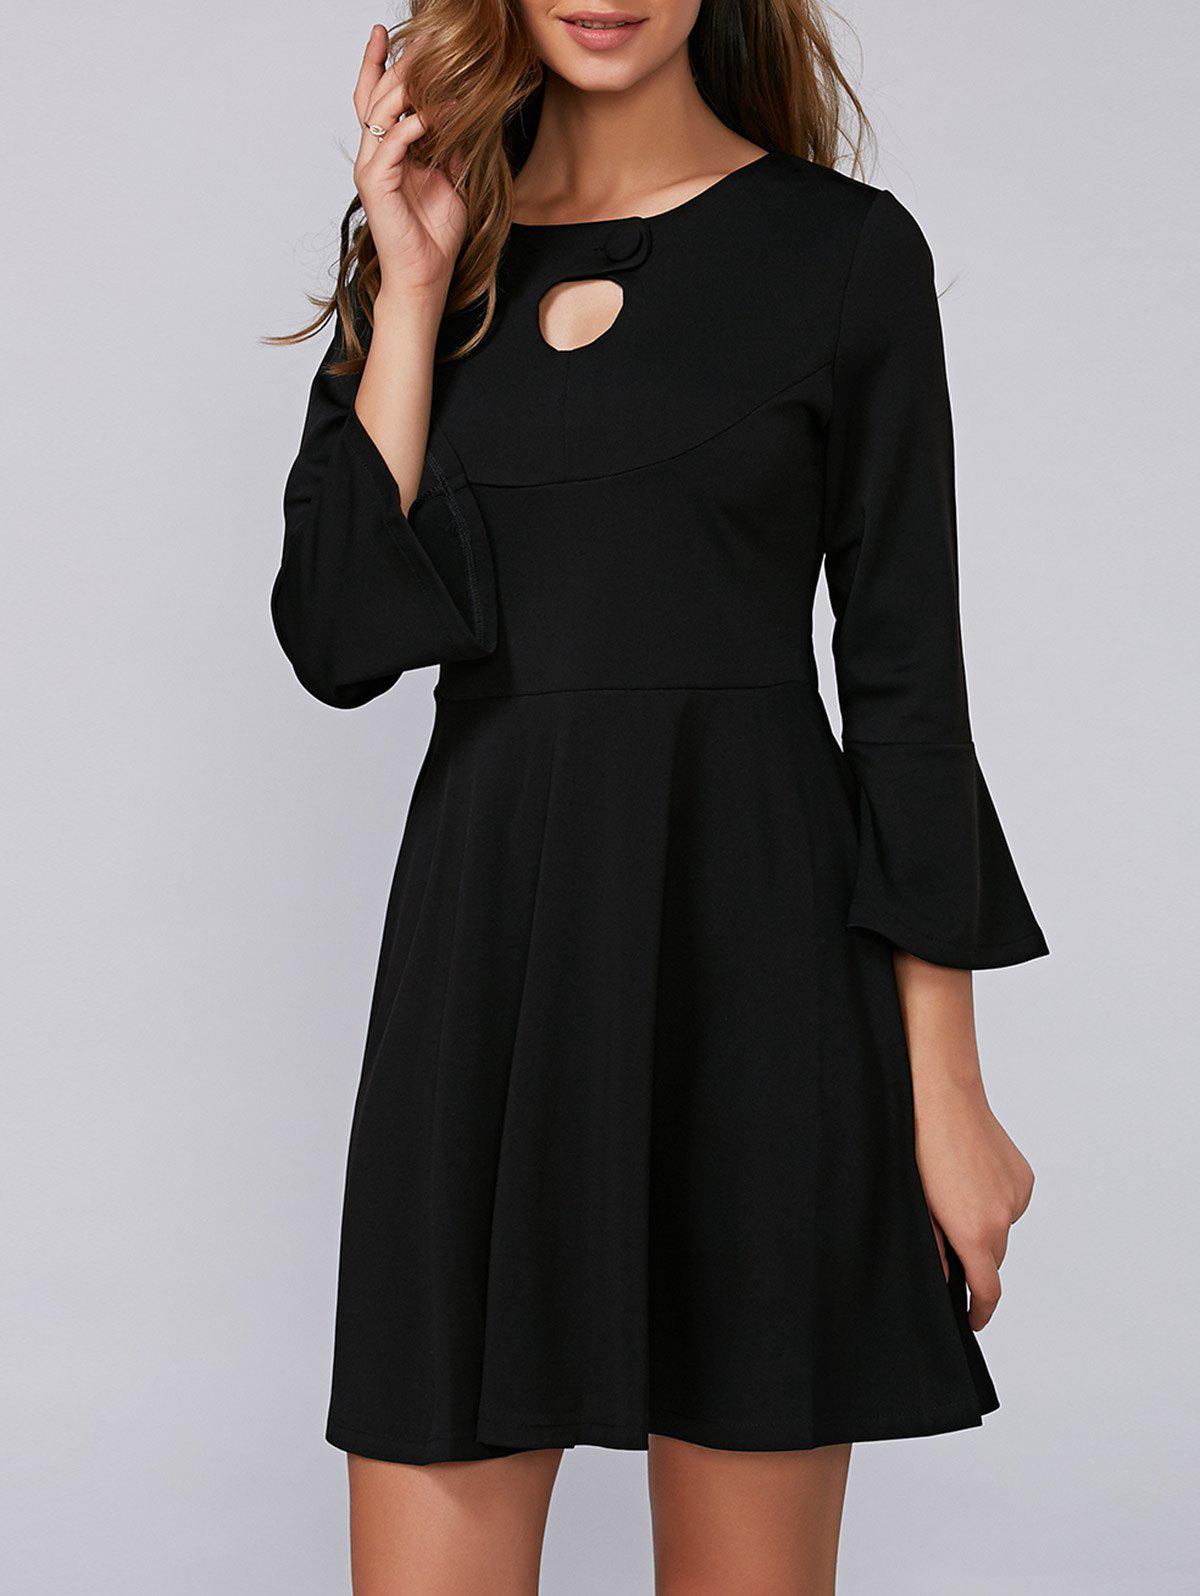 Flounce Flare Sleeve Dress - BLACK XL